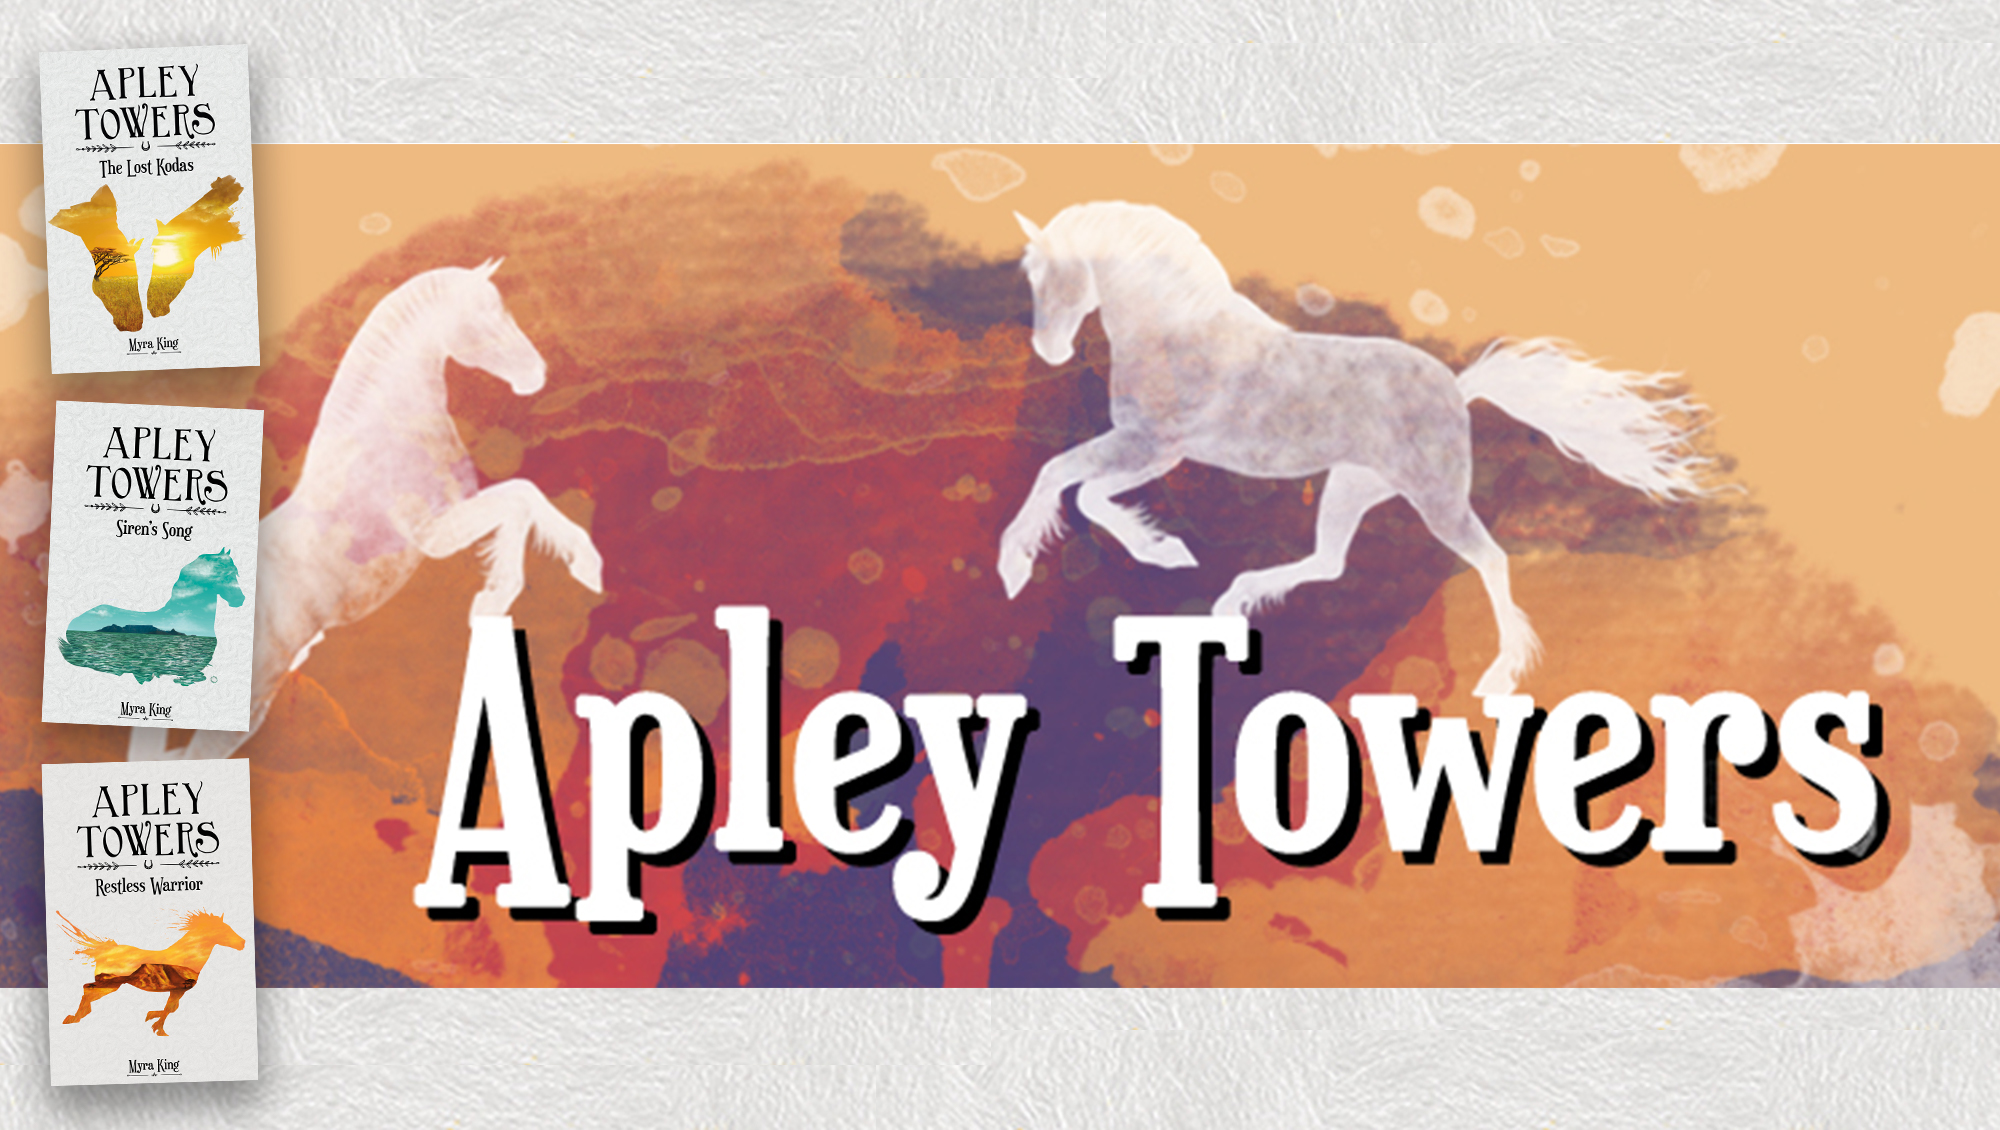 Apley Towers